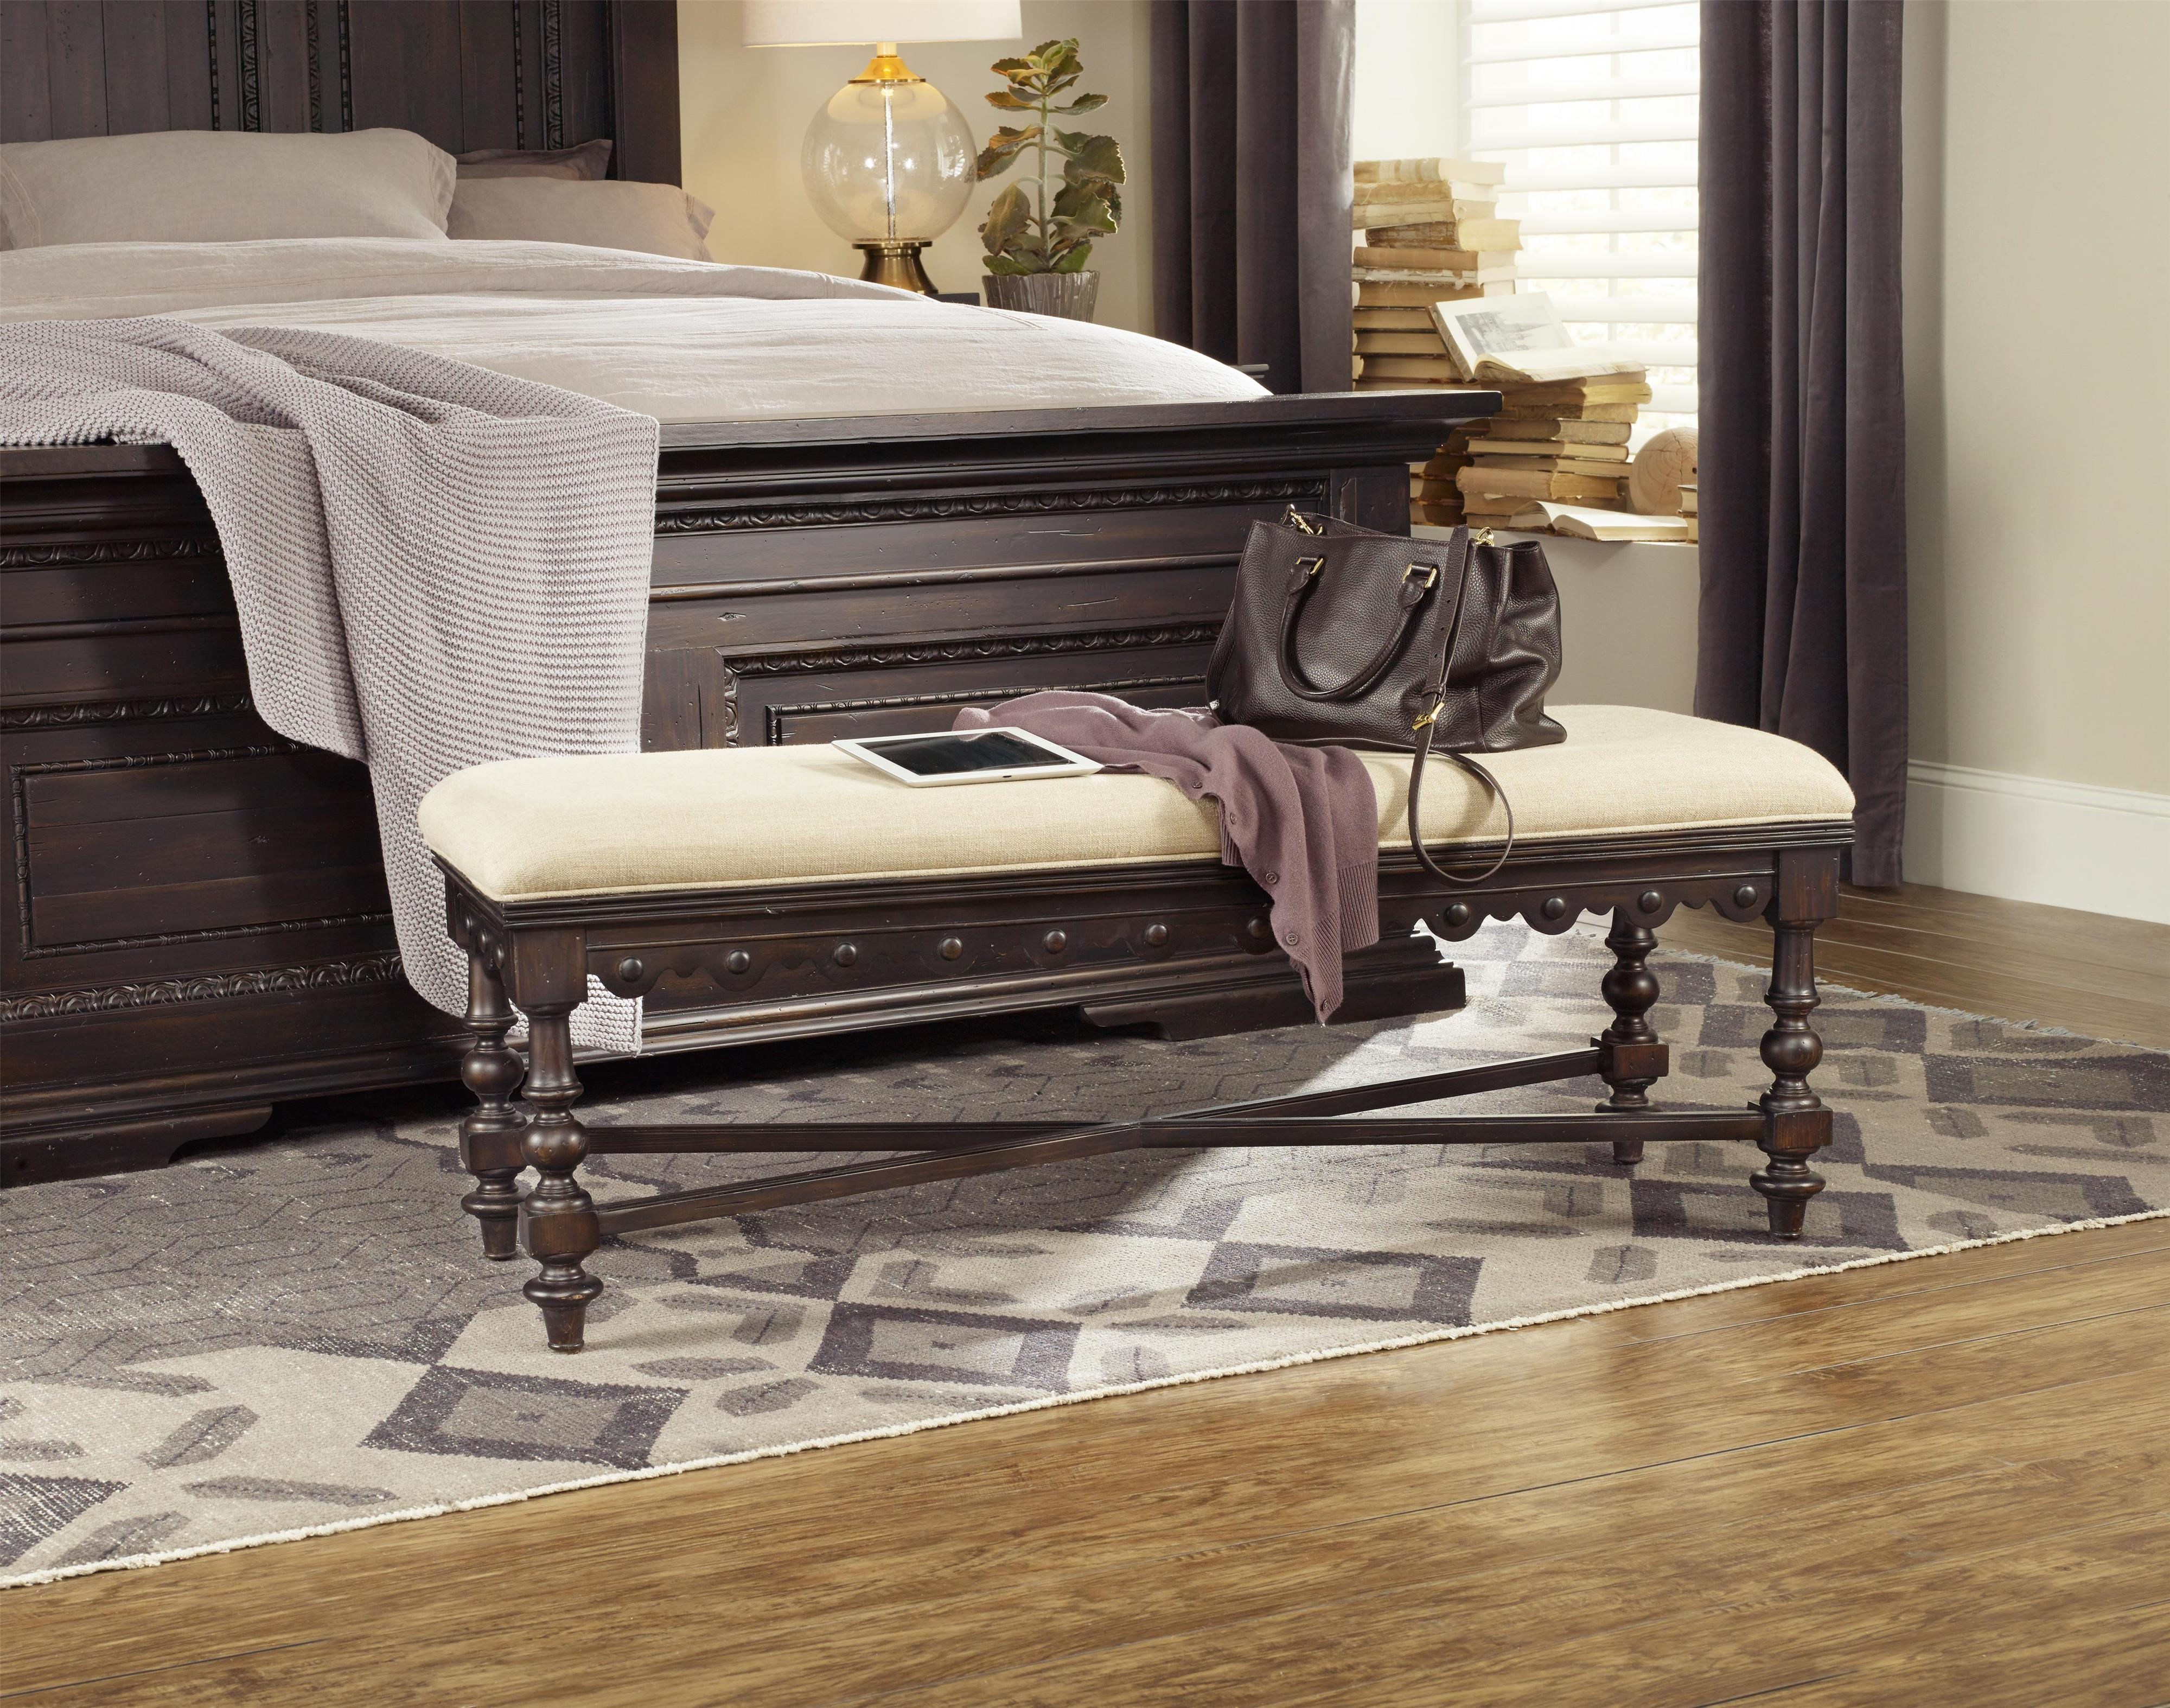 Foyer Settee Bed Bench : Upholstered bed bench with scalloped detailing by hooker